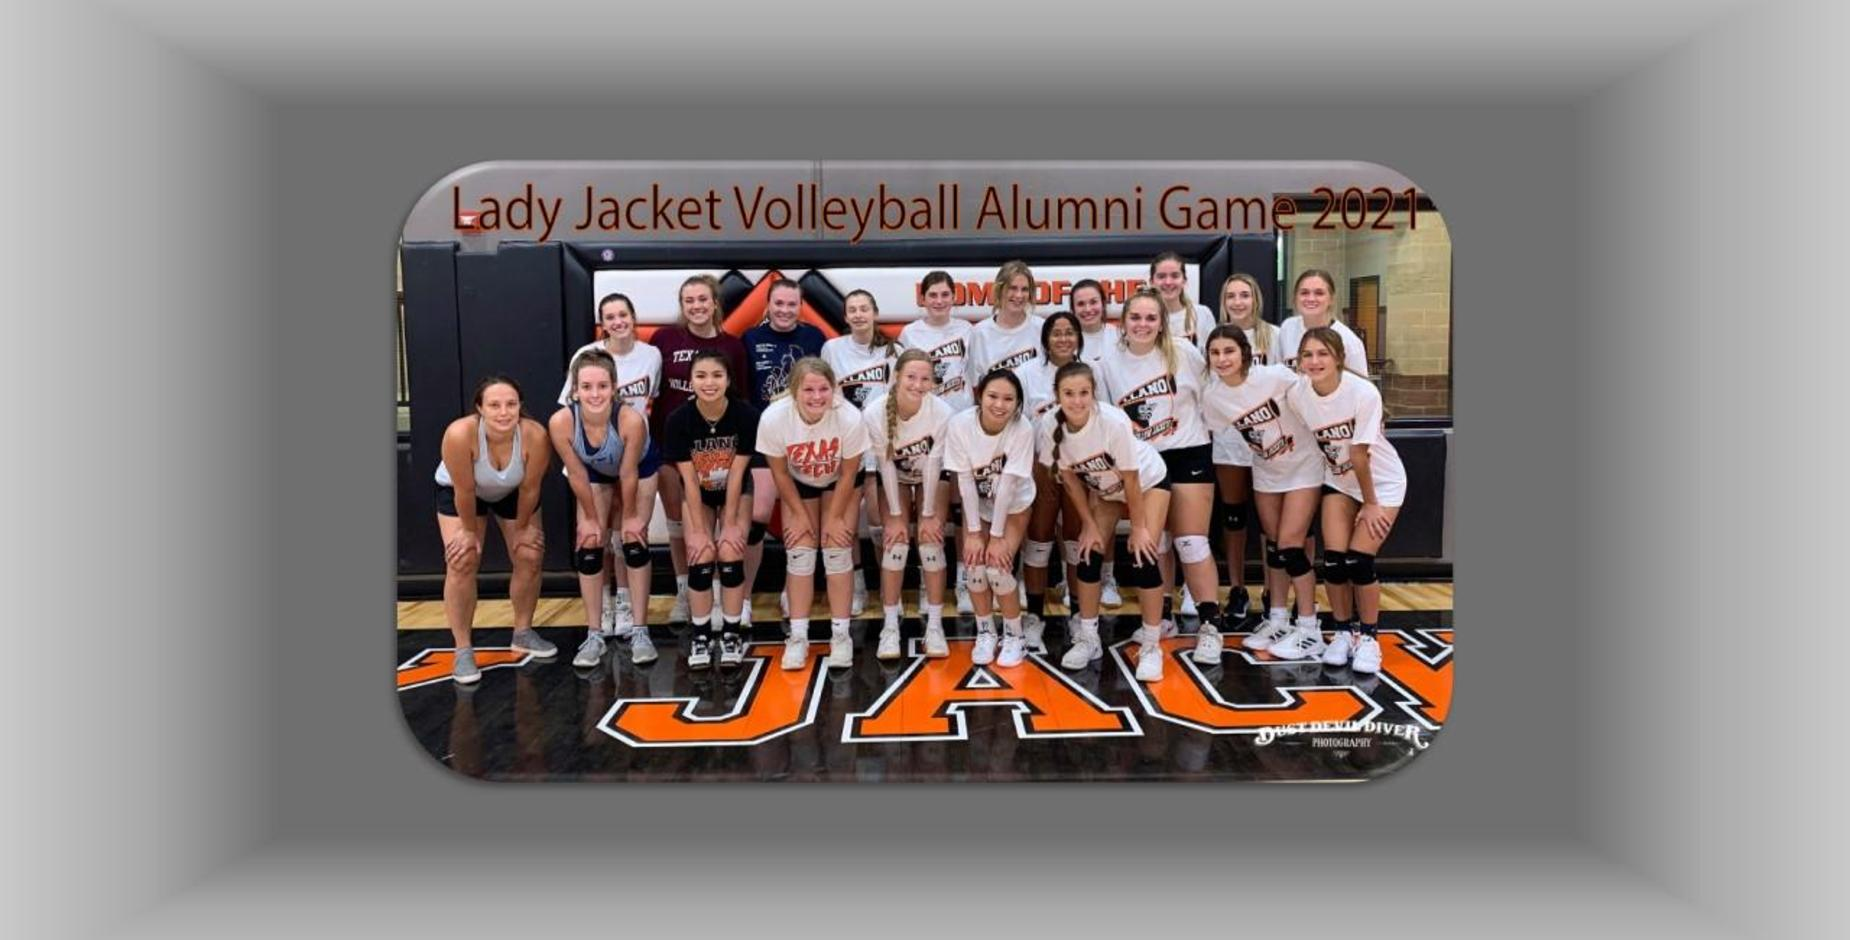 Volleyball Alumni Game Picture